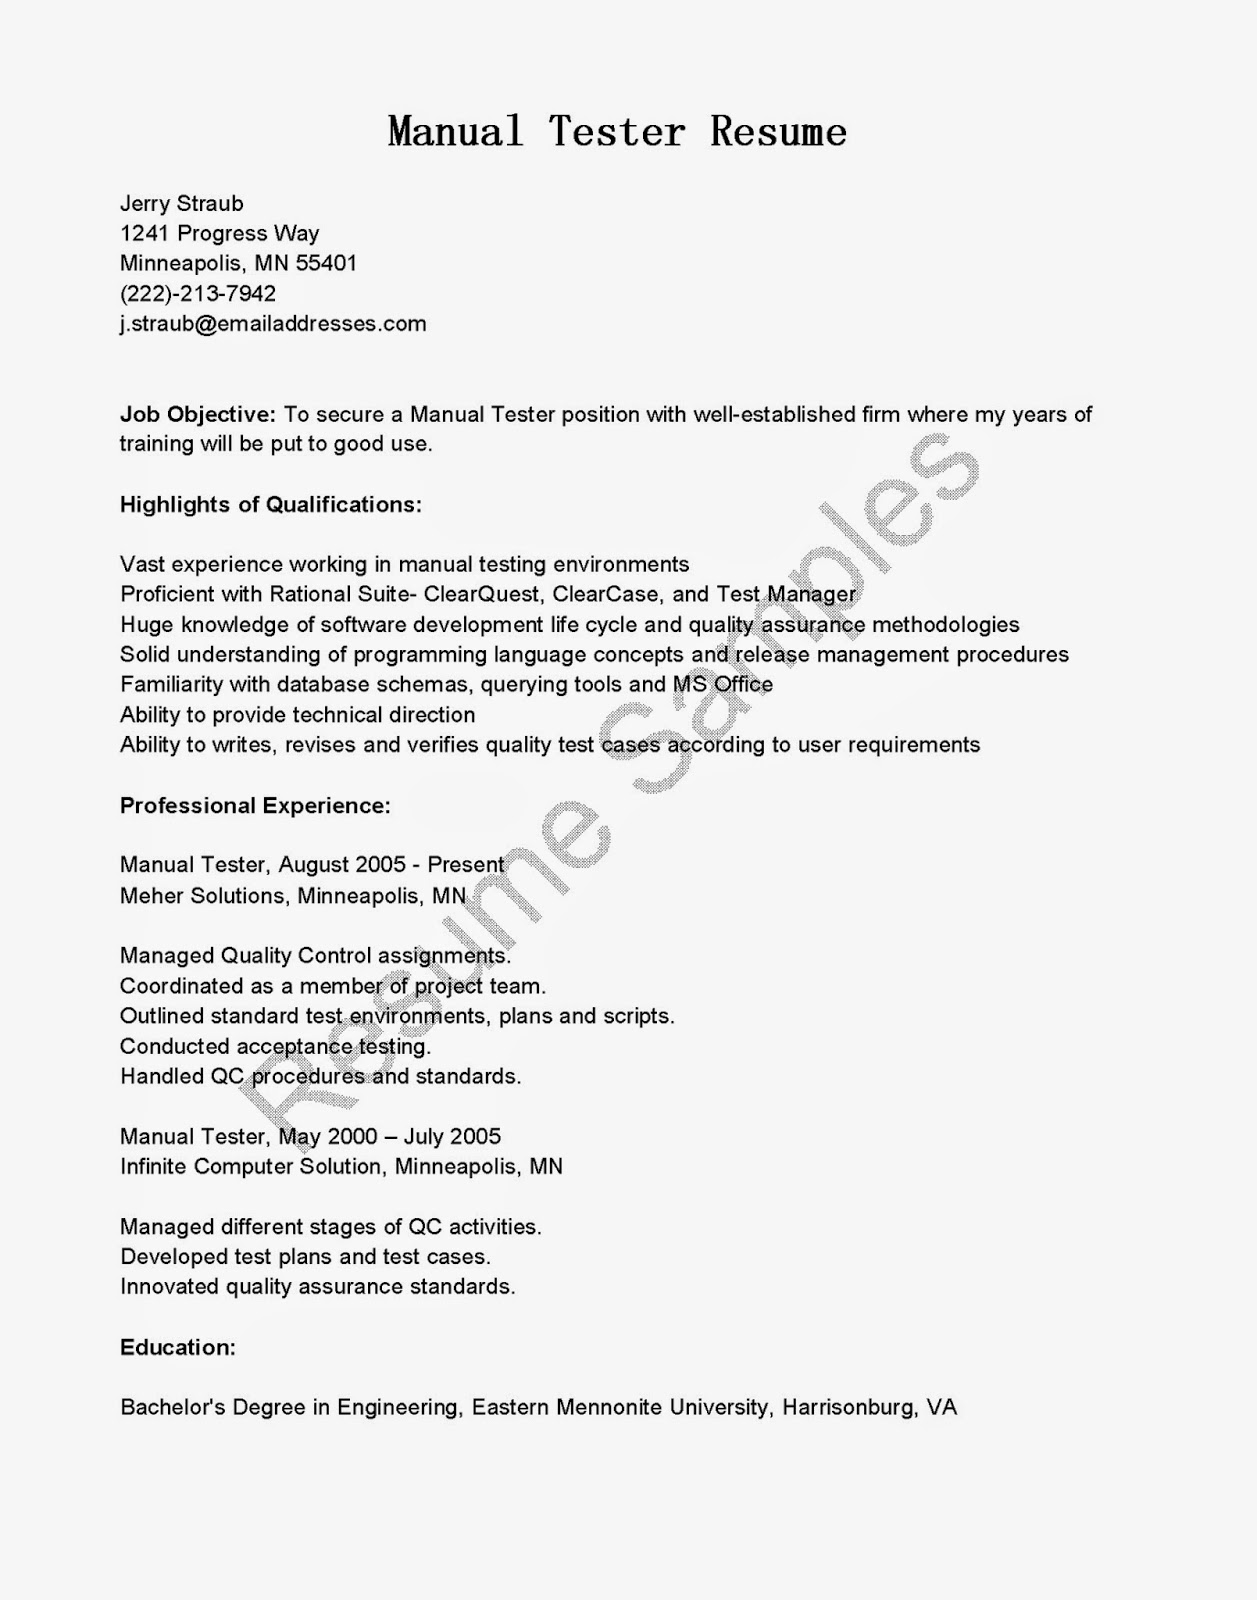 Resume samples manual tester resume sample for Sample resume for manual testing professional of 2 yr experience